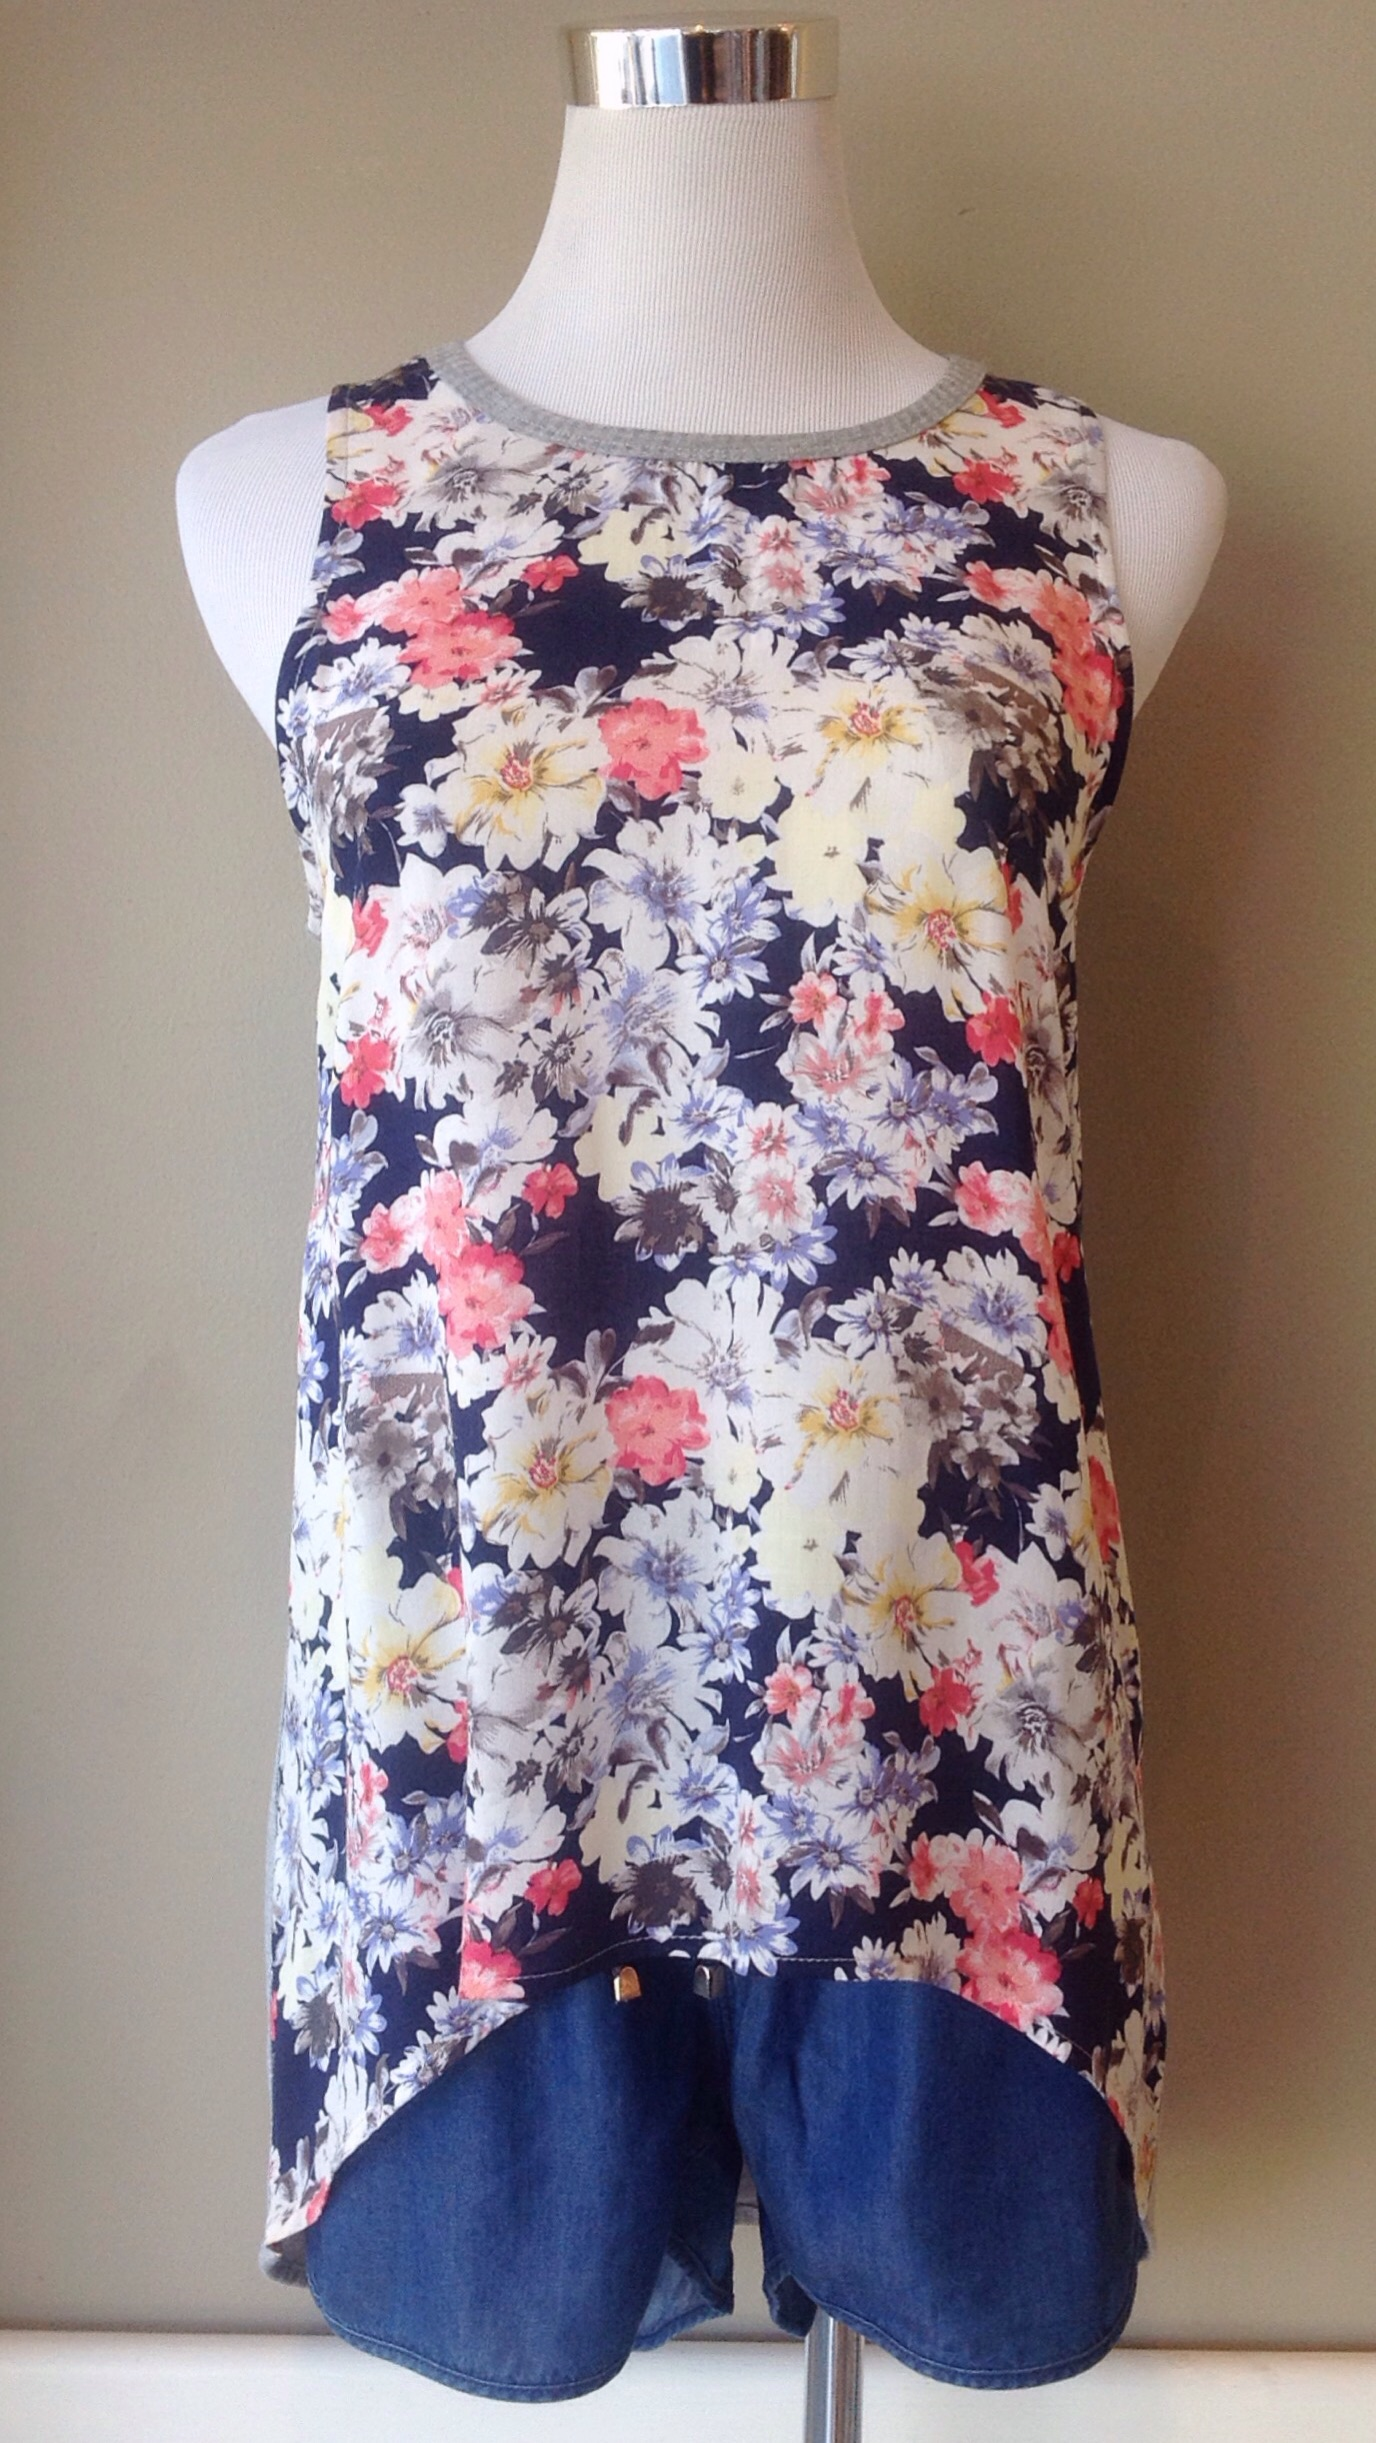 Floral tank with solid grey knit back and high-low hem, $32